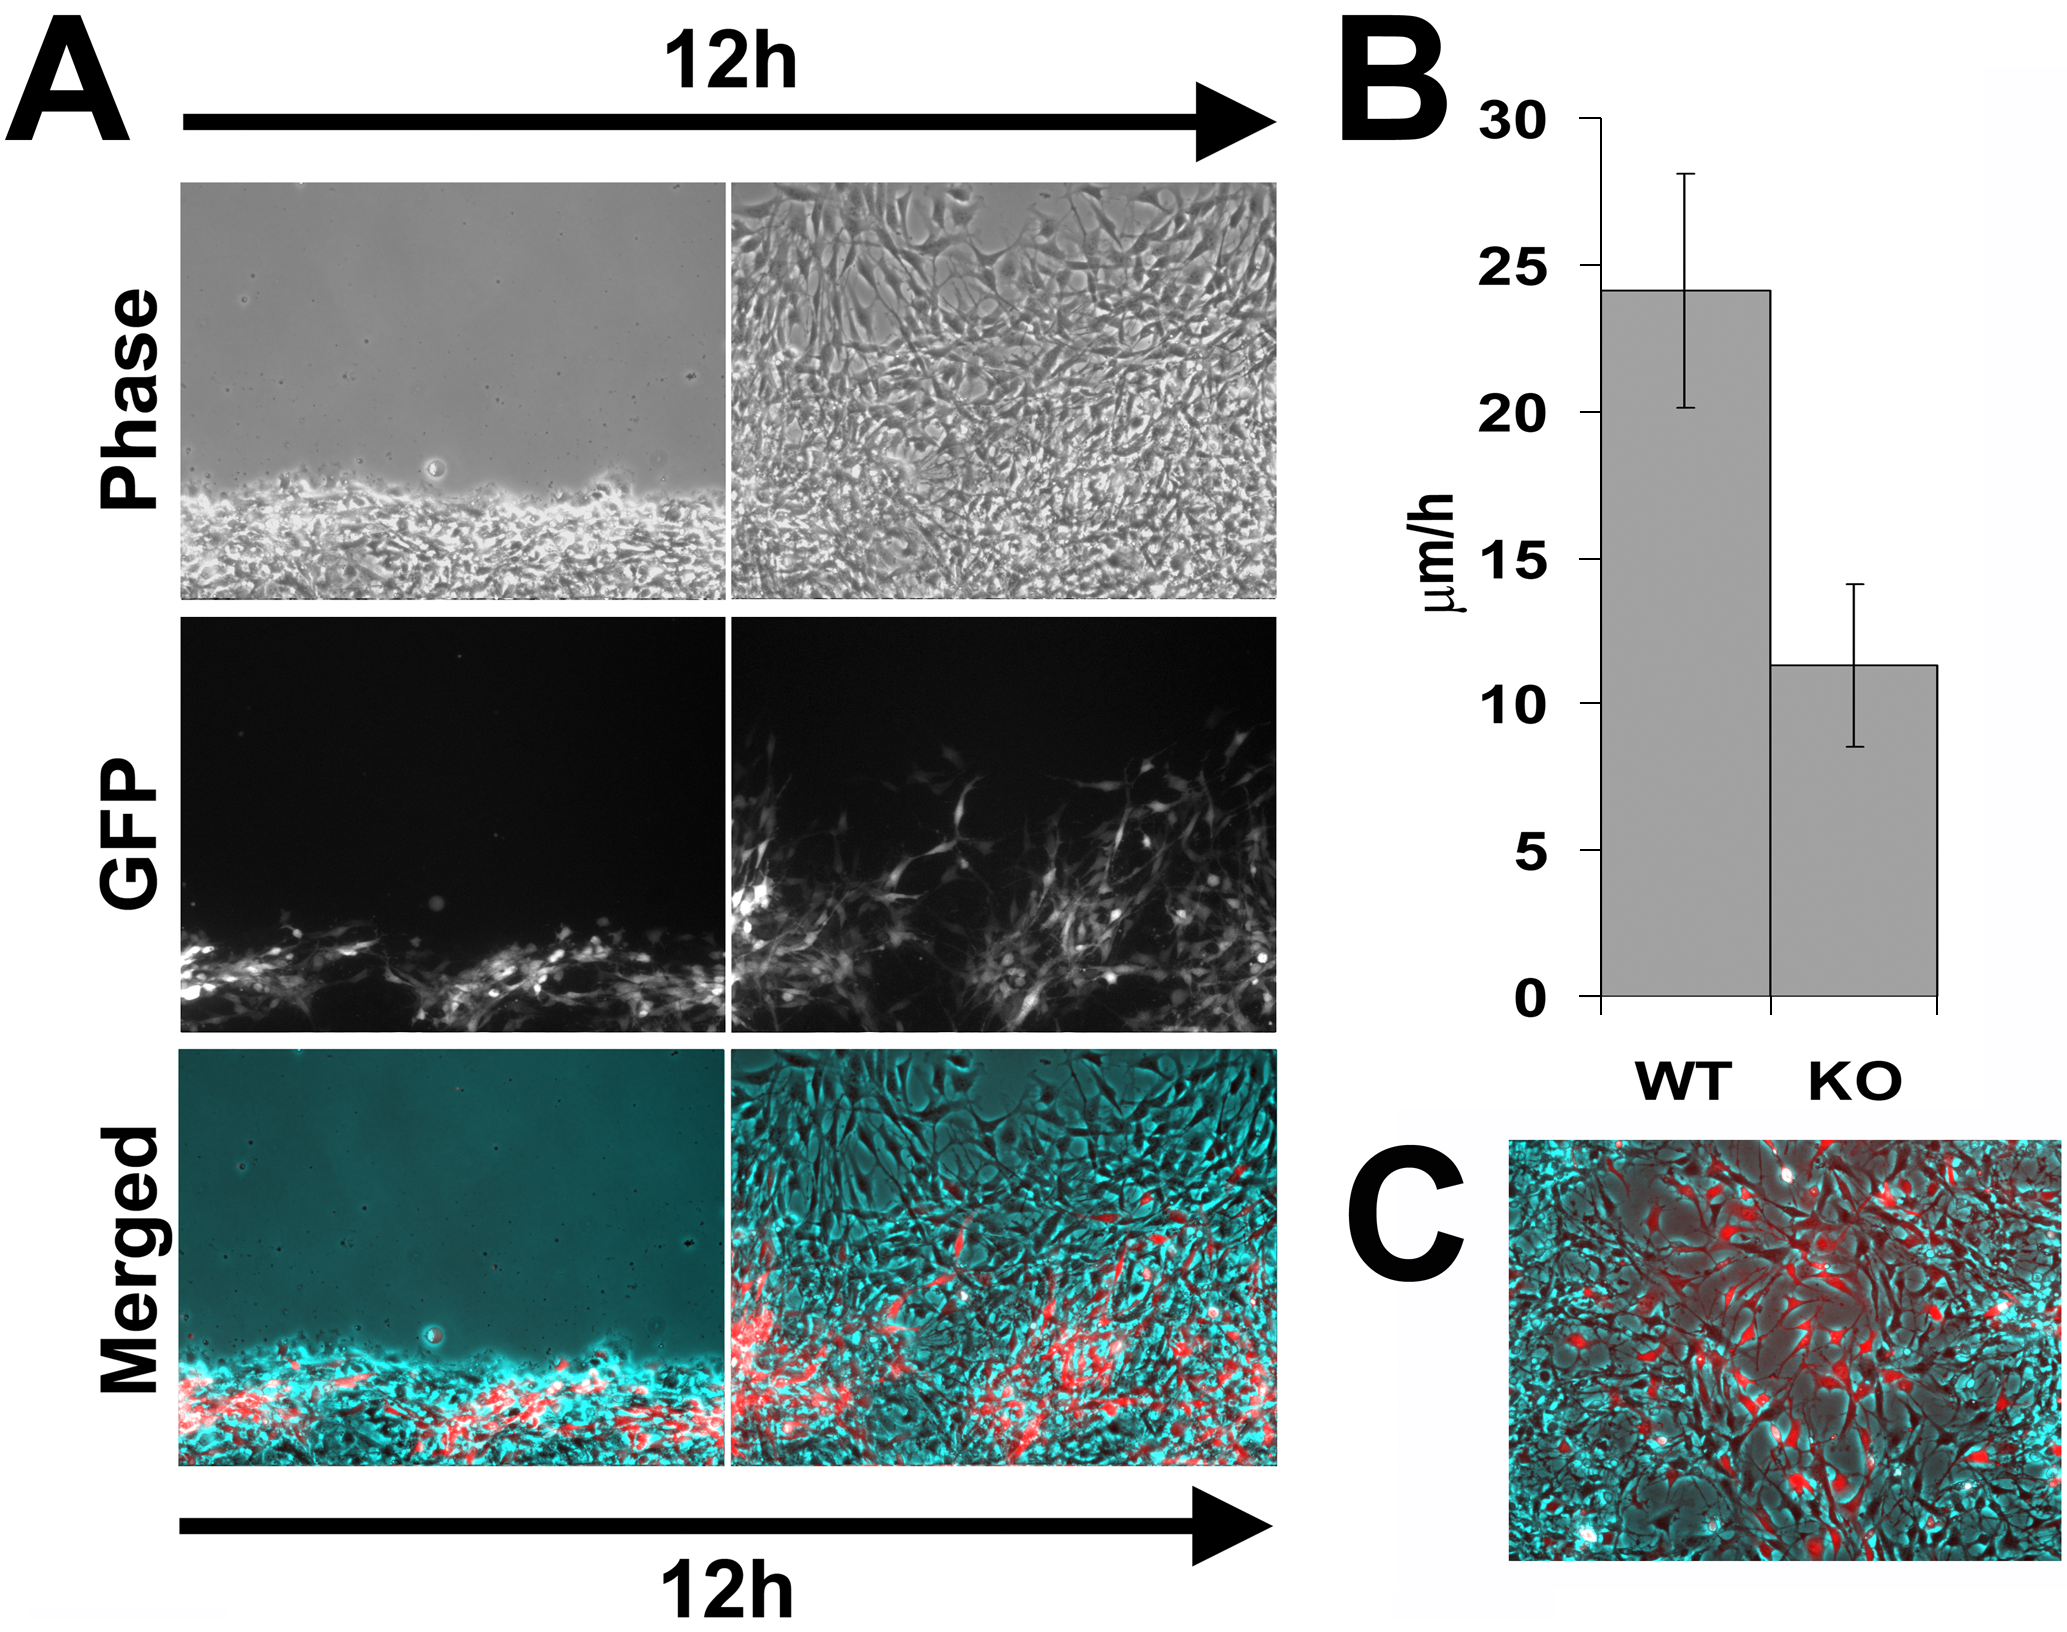 <i>Ate1</i> knockout cells co-cultured with wild-type move with speeds closer to the wild-type cells than when cultured individually.